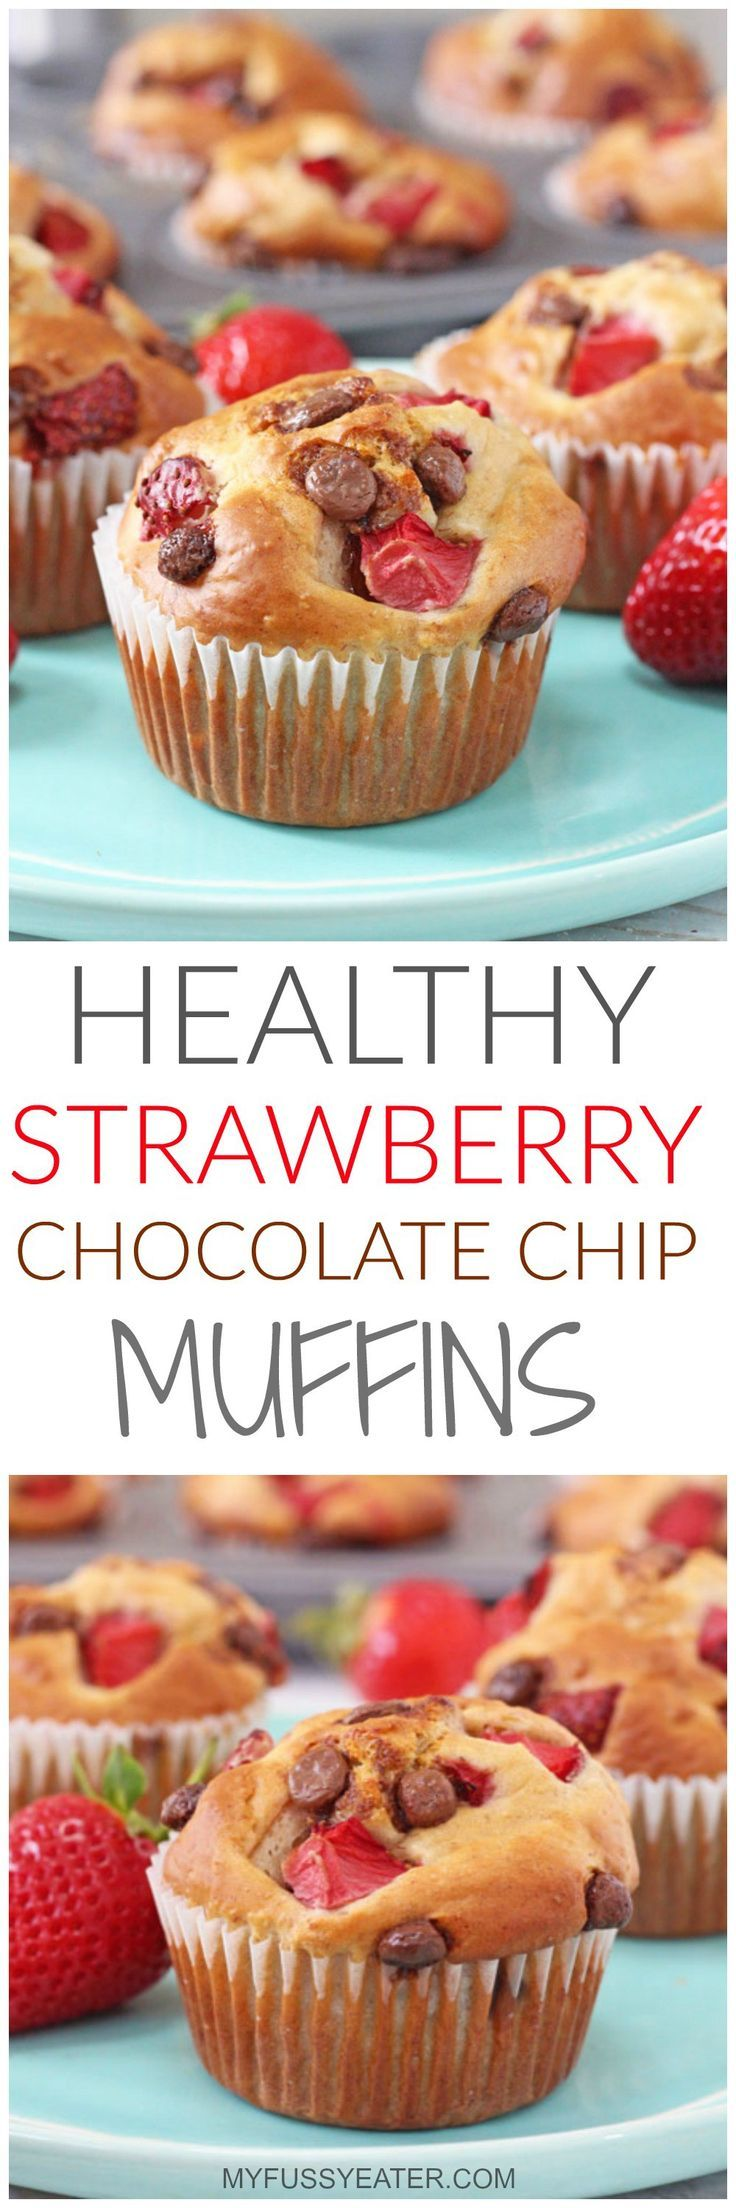 These Healthy Strawberry & Chocolate Chip Muffins are packed full of oats, banana, greek yogurt and honey and take just a couple of minutes to whip up in a blender or food processor.